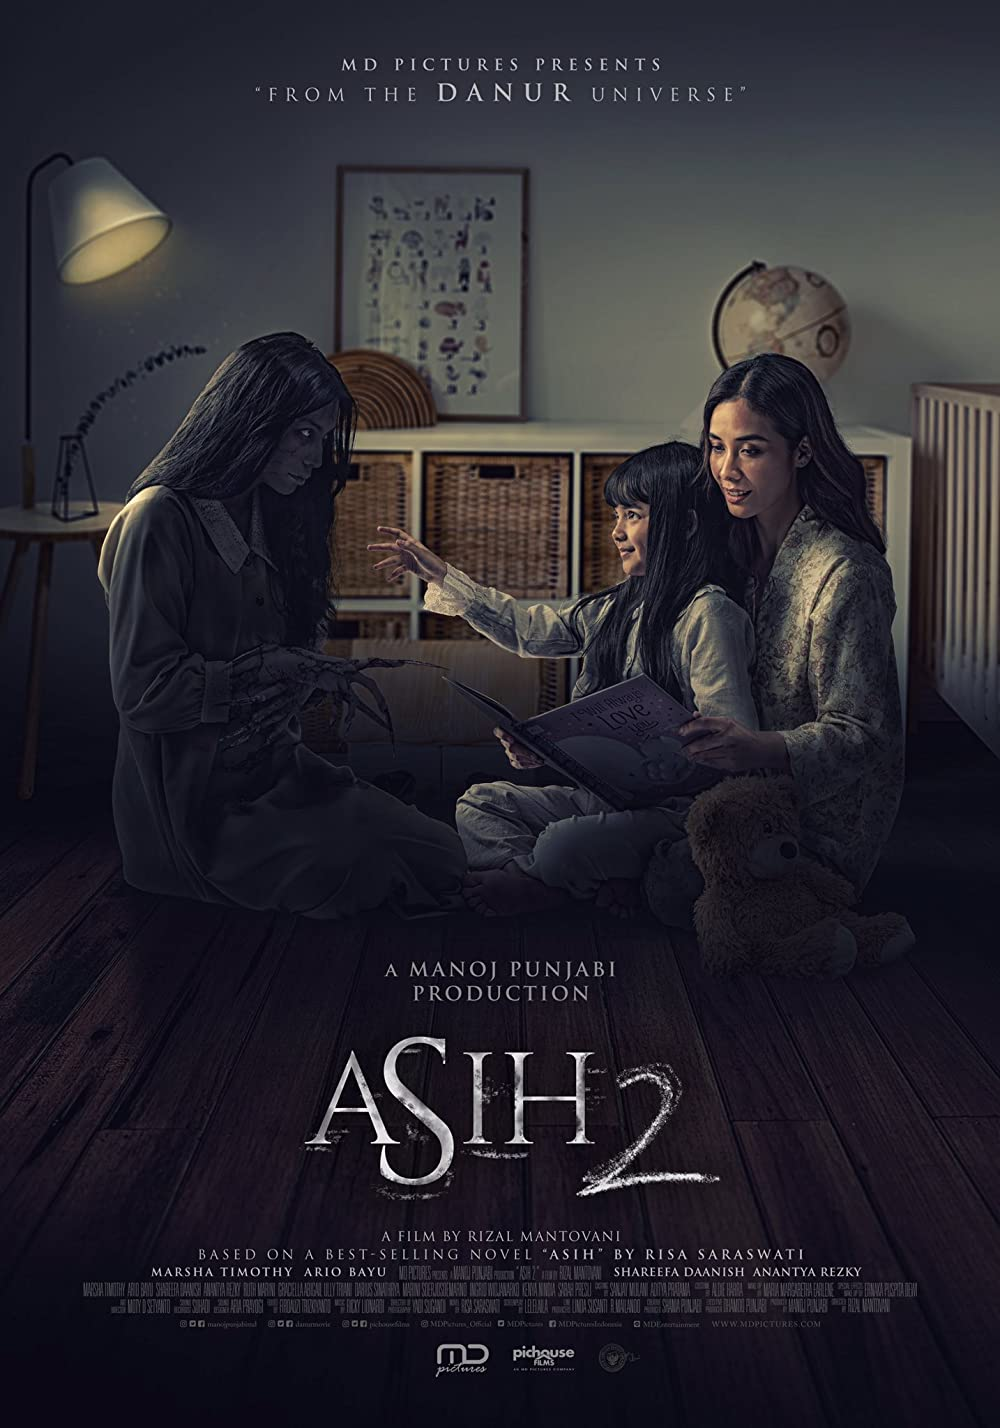 Asih 2 (2020) Tamil Dubbed (Voice Over) & English [Dual Audio] WebRip 720p [1XBET]